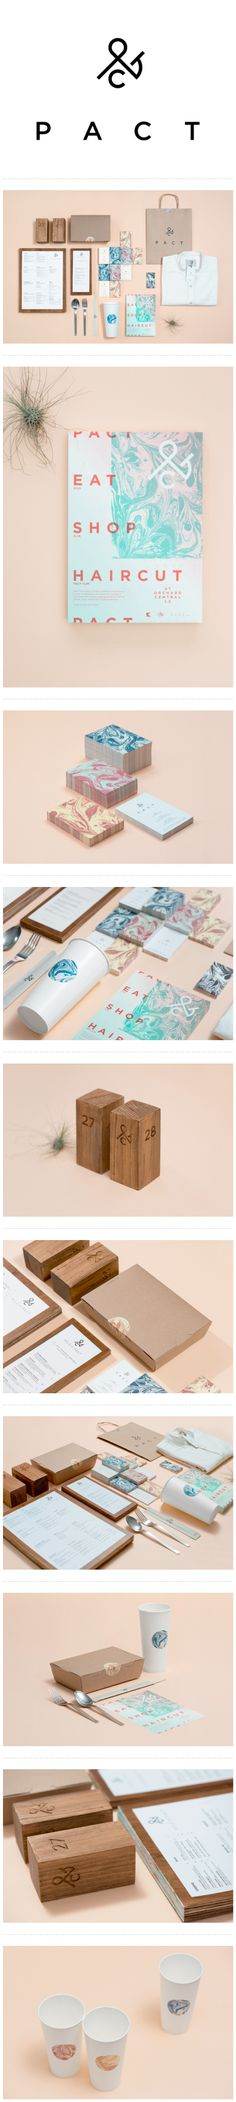 Pact #identity #packaging #branding #marketing PD